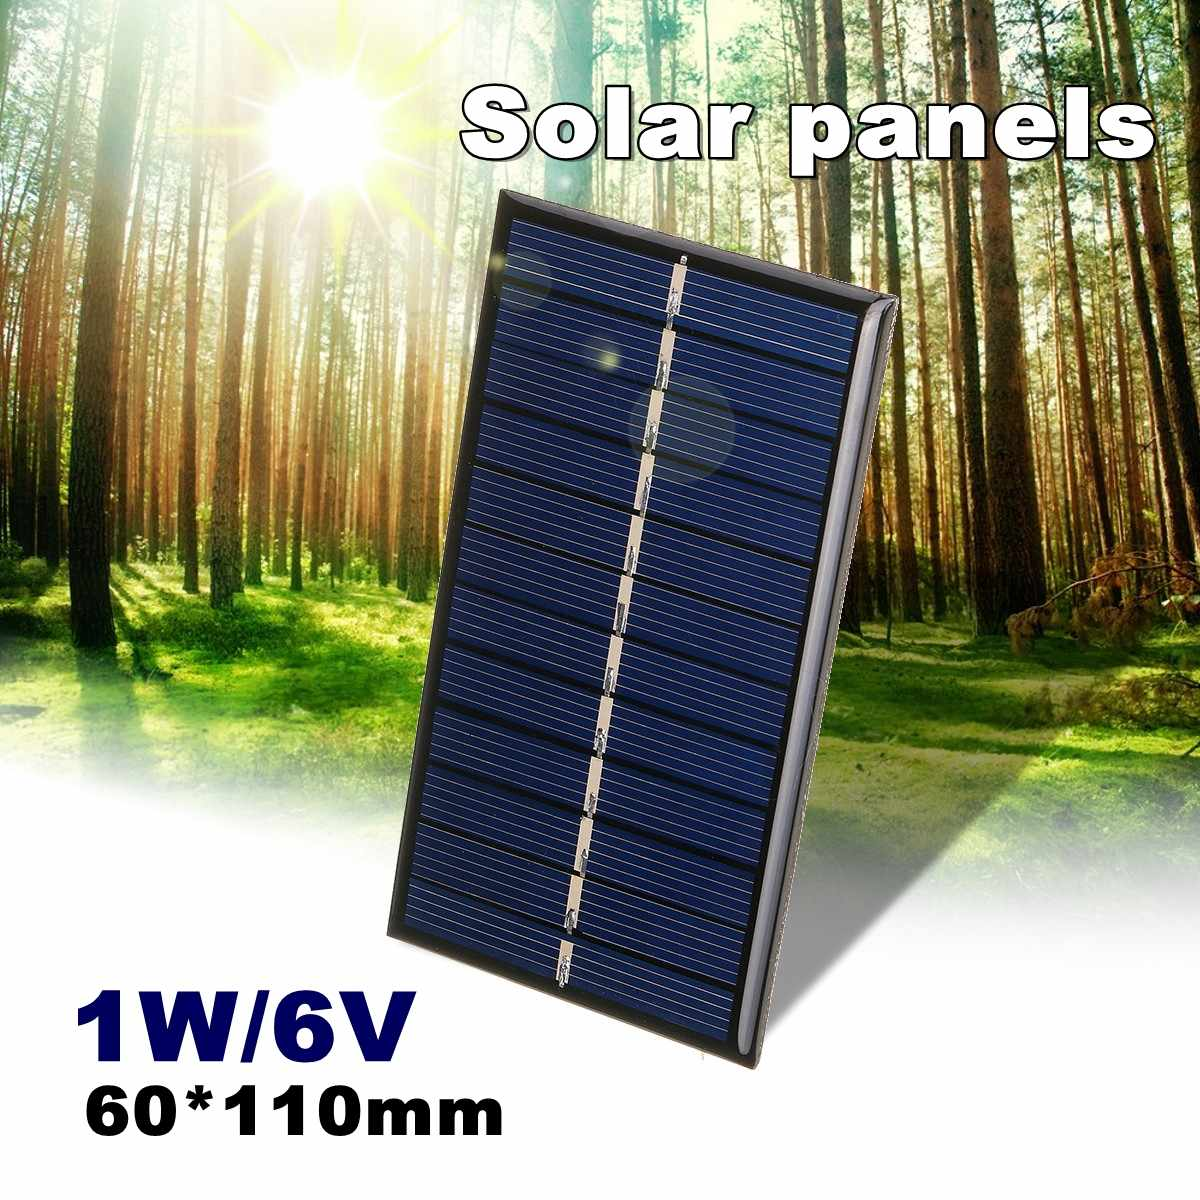 LEORY <font><b>Solar</b></font> <font><b>Panel</b></font> <font><b>6V</b></font> <font><b>1W</b></font> <font><b>Solar</b></font> Charger 5V Phone Battery Charger Mini DIY Epoxy Polycrystalline Cells For Cellphone image